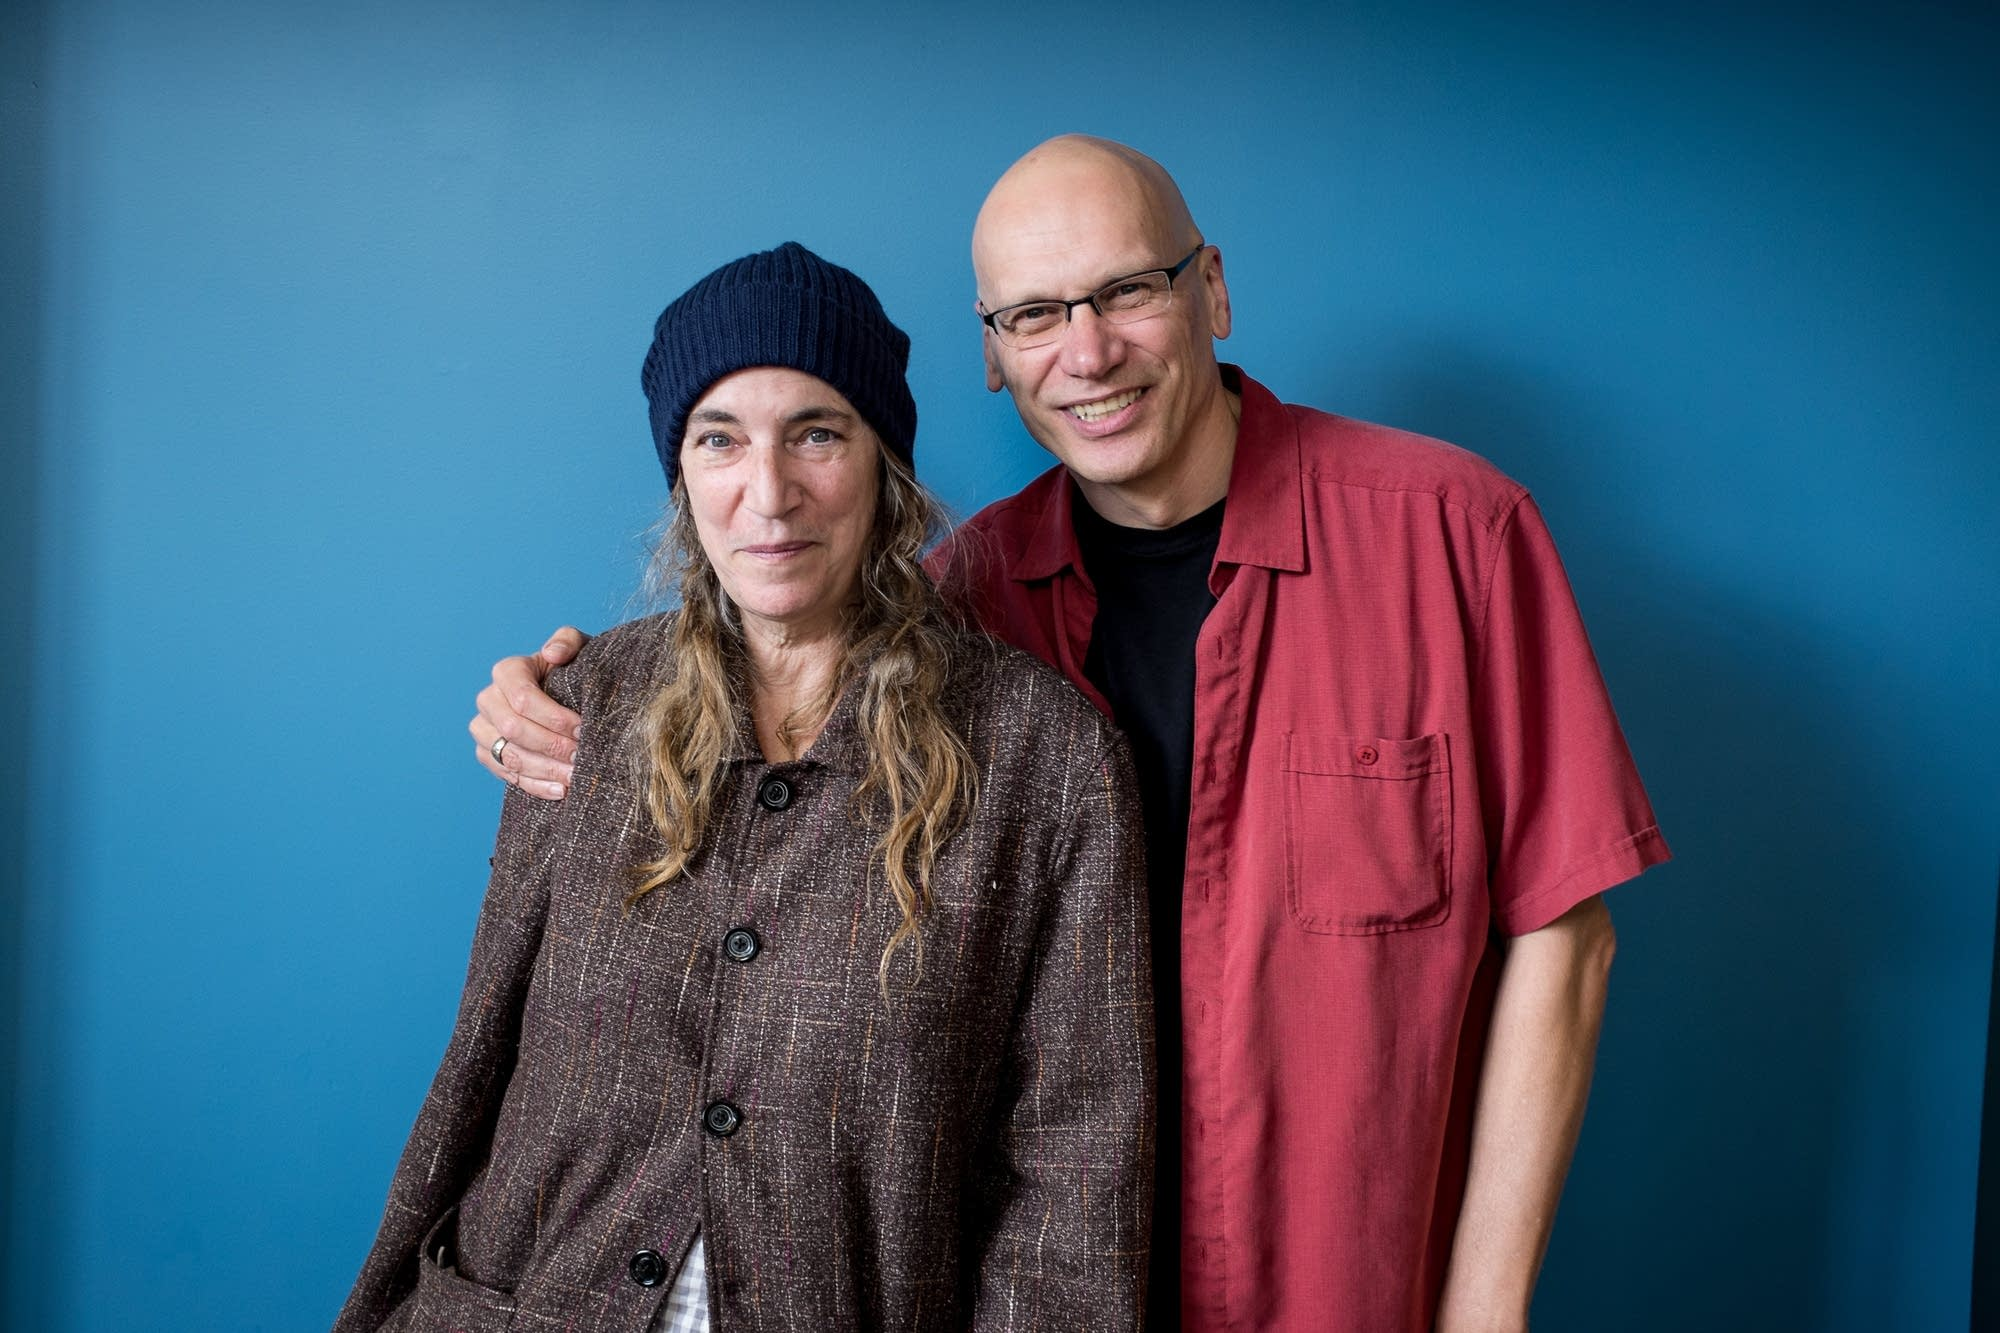 Patti Smith and Mark Wheat